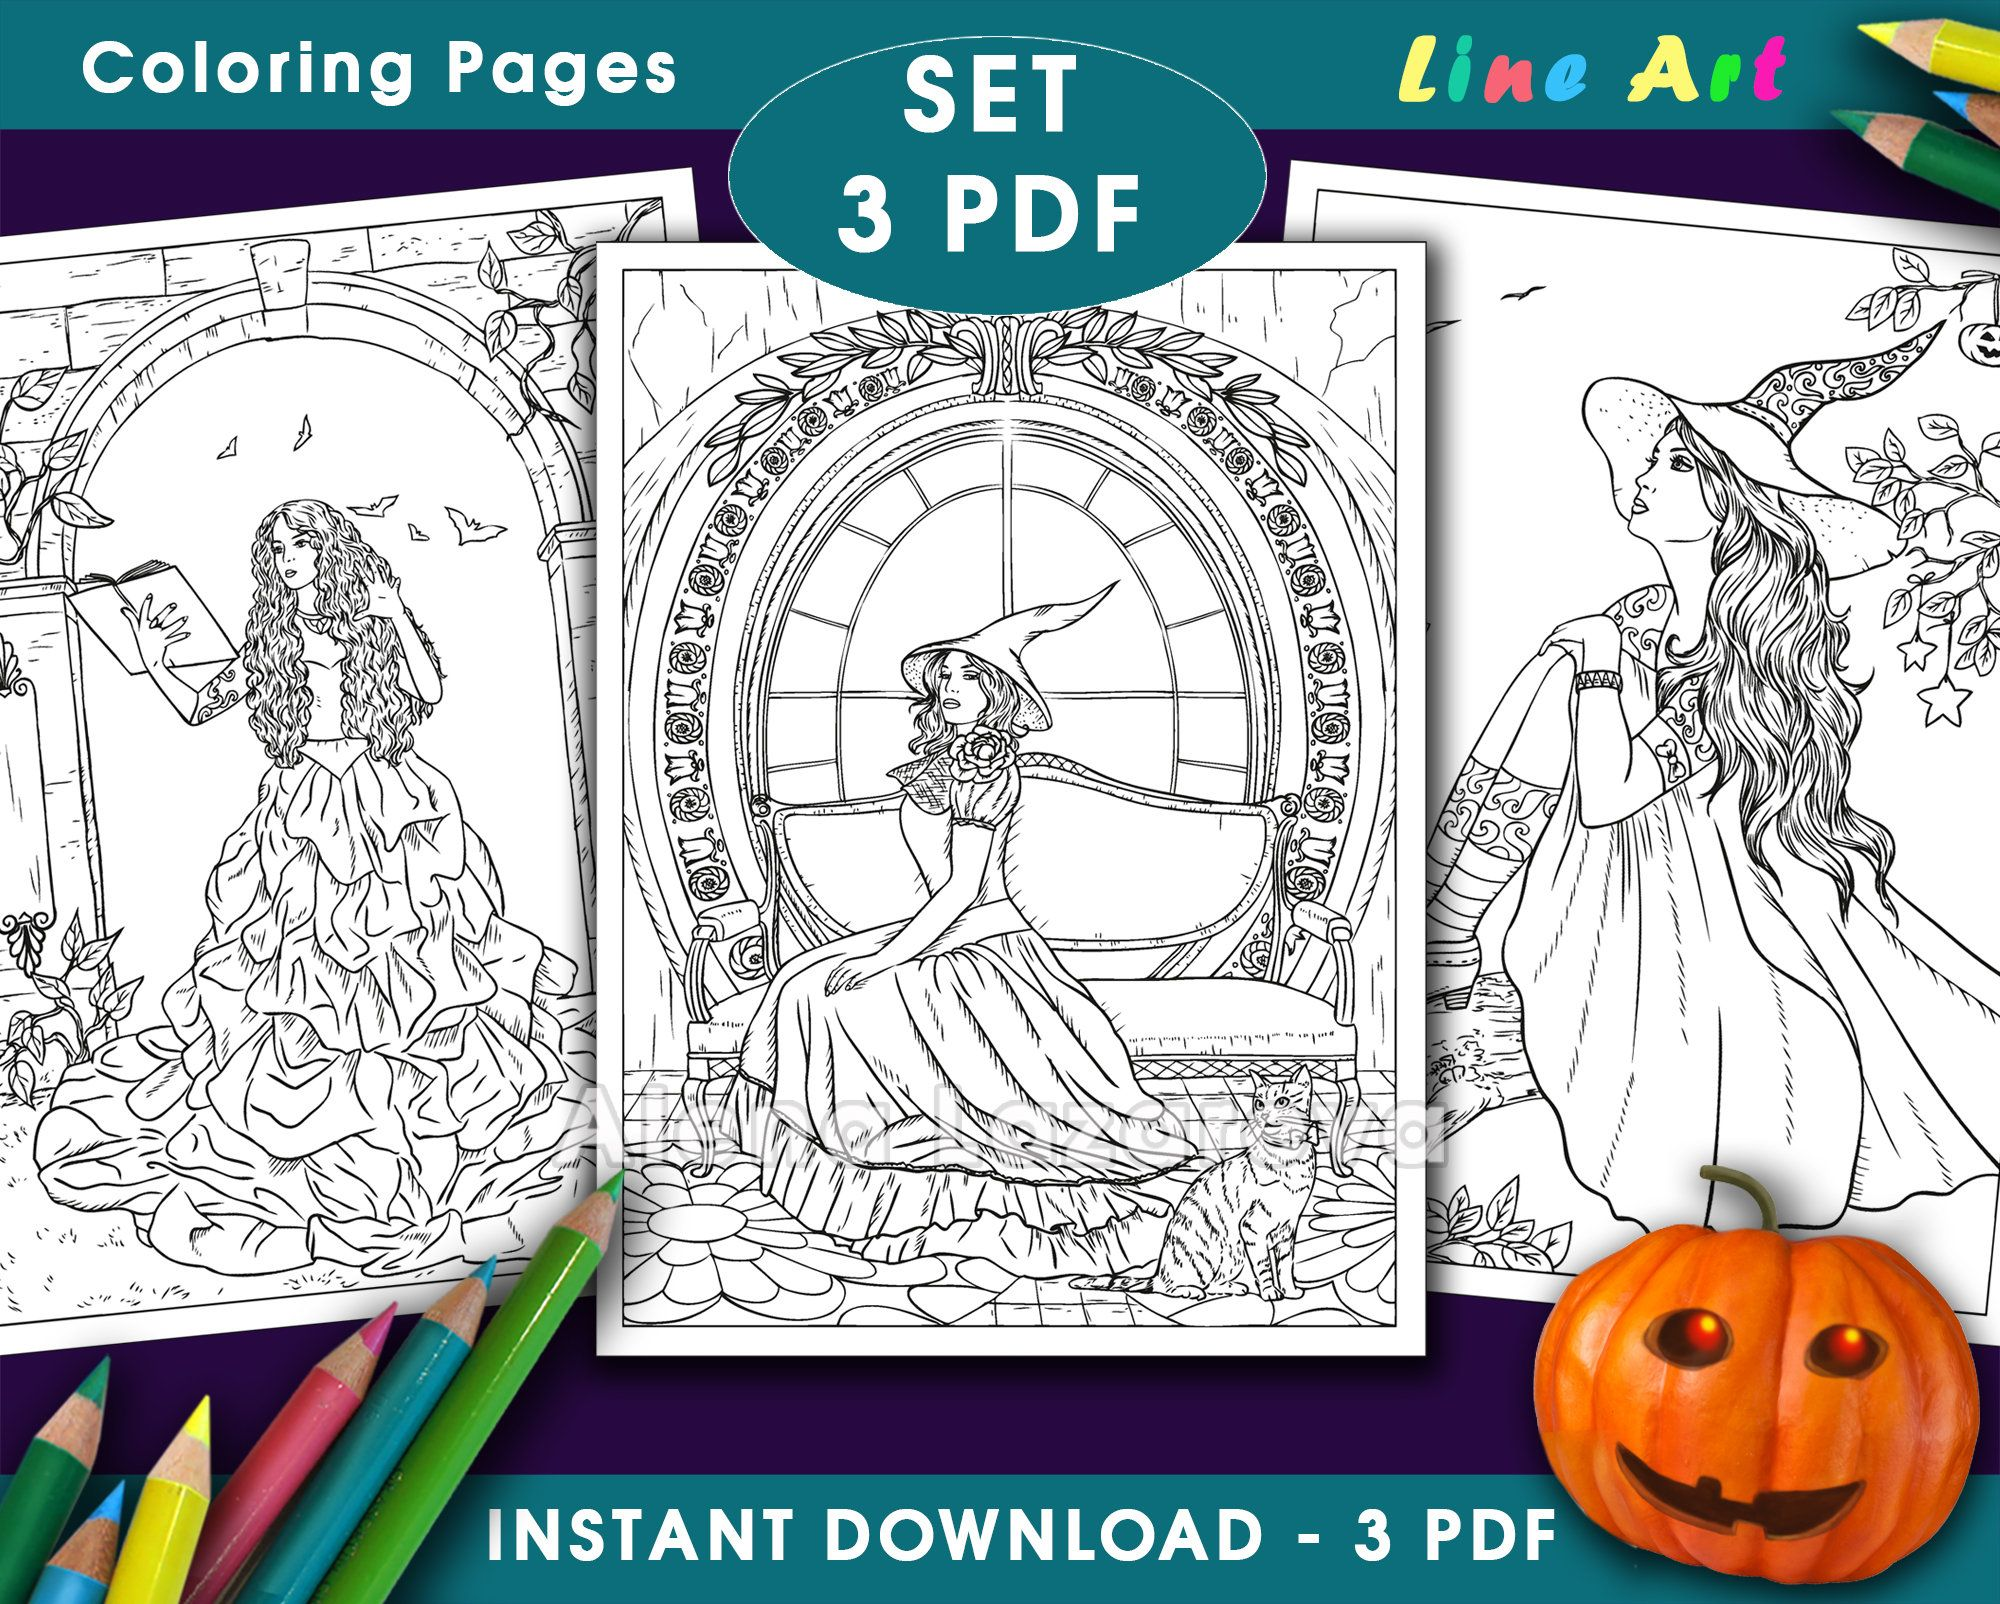 Coloring Pages Set 3 Pdf From Book 100 Line Art Part2 Etsy Coloring Pages Coloring Books Line Art